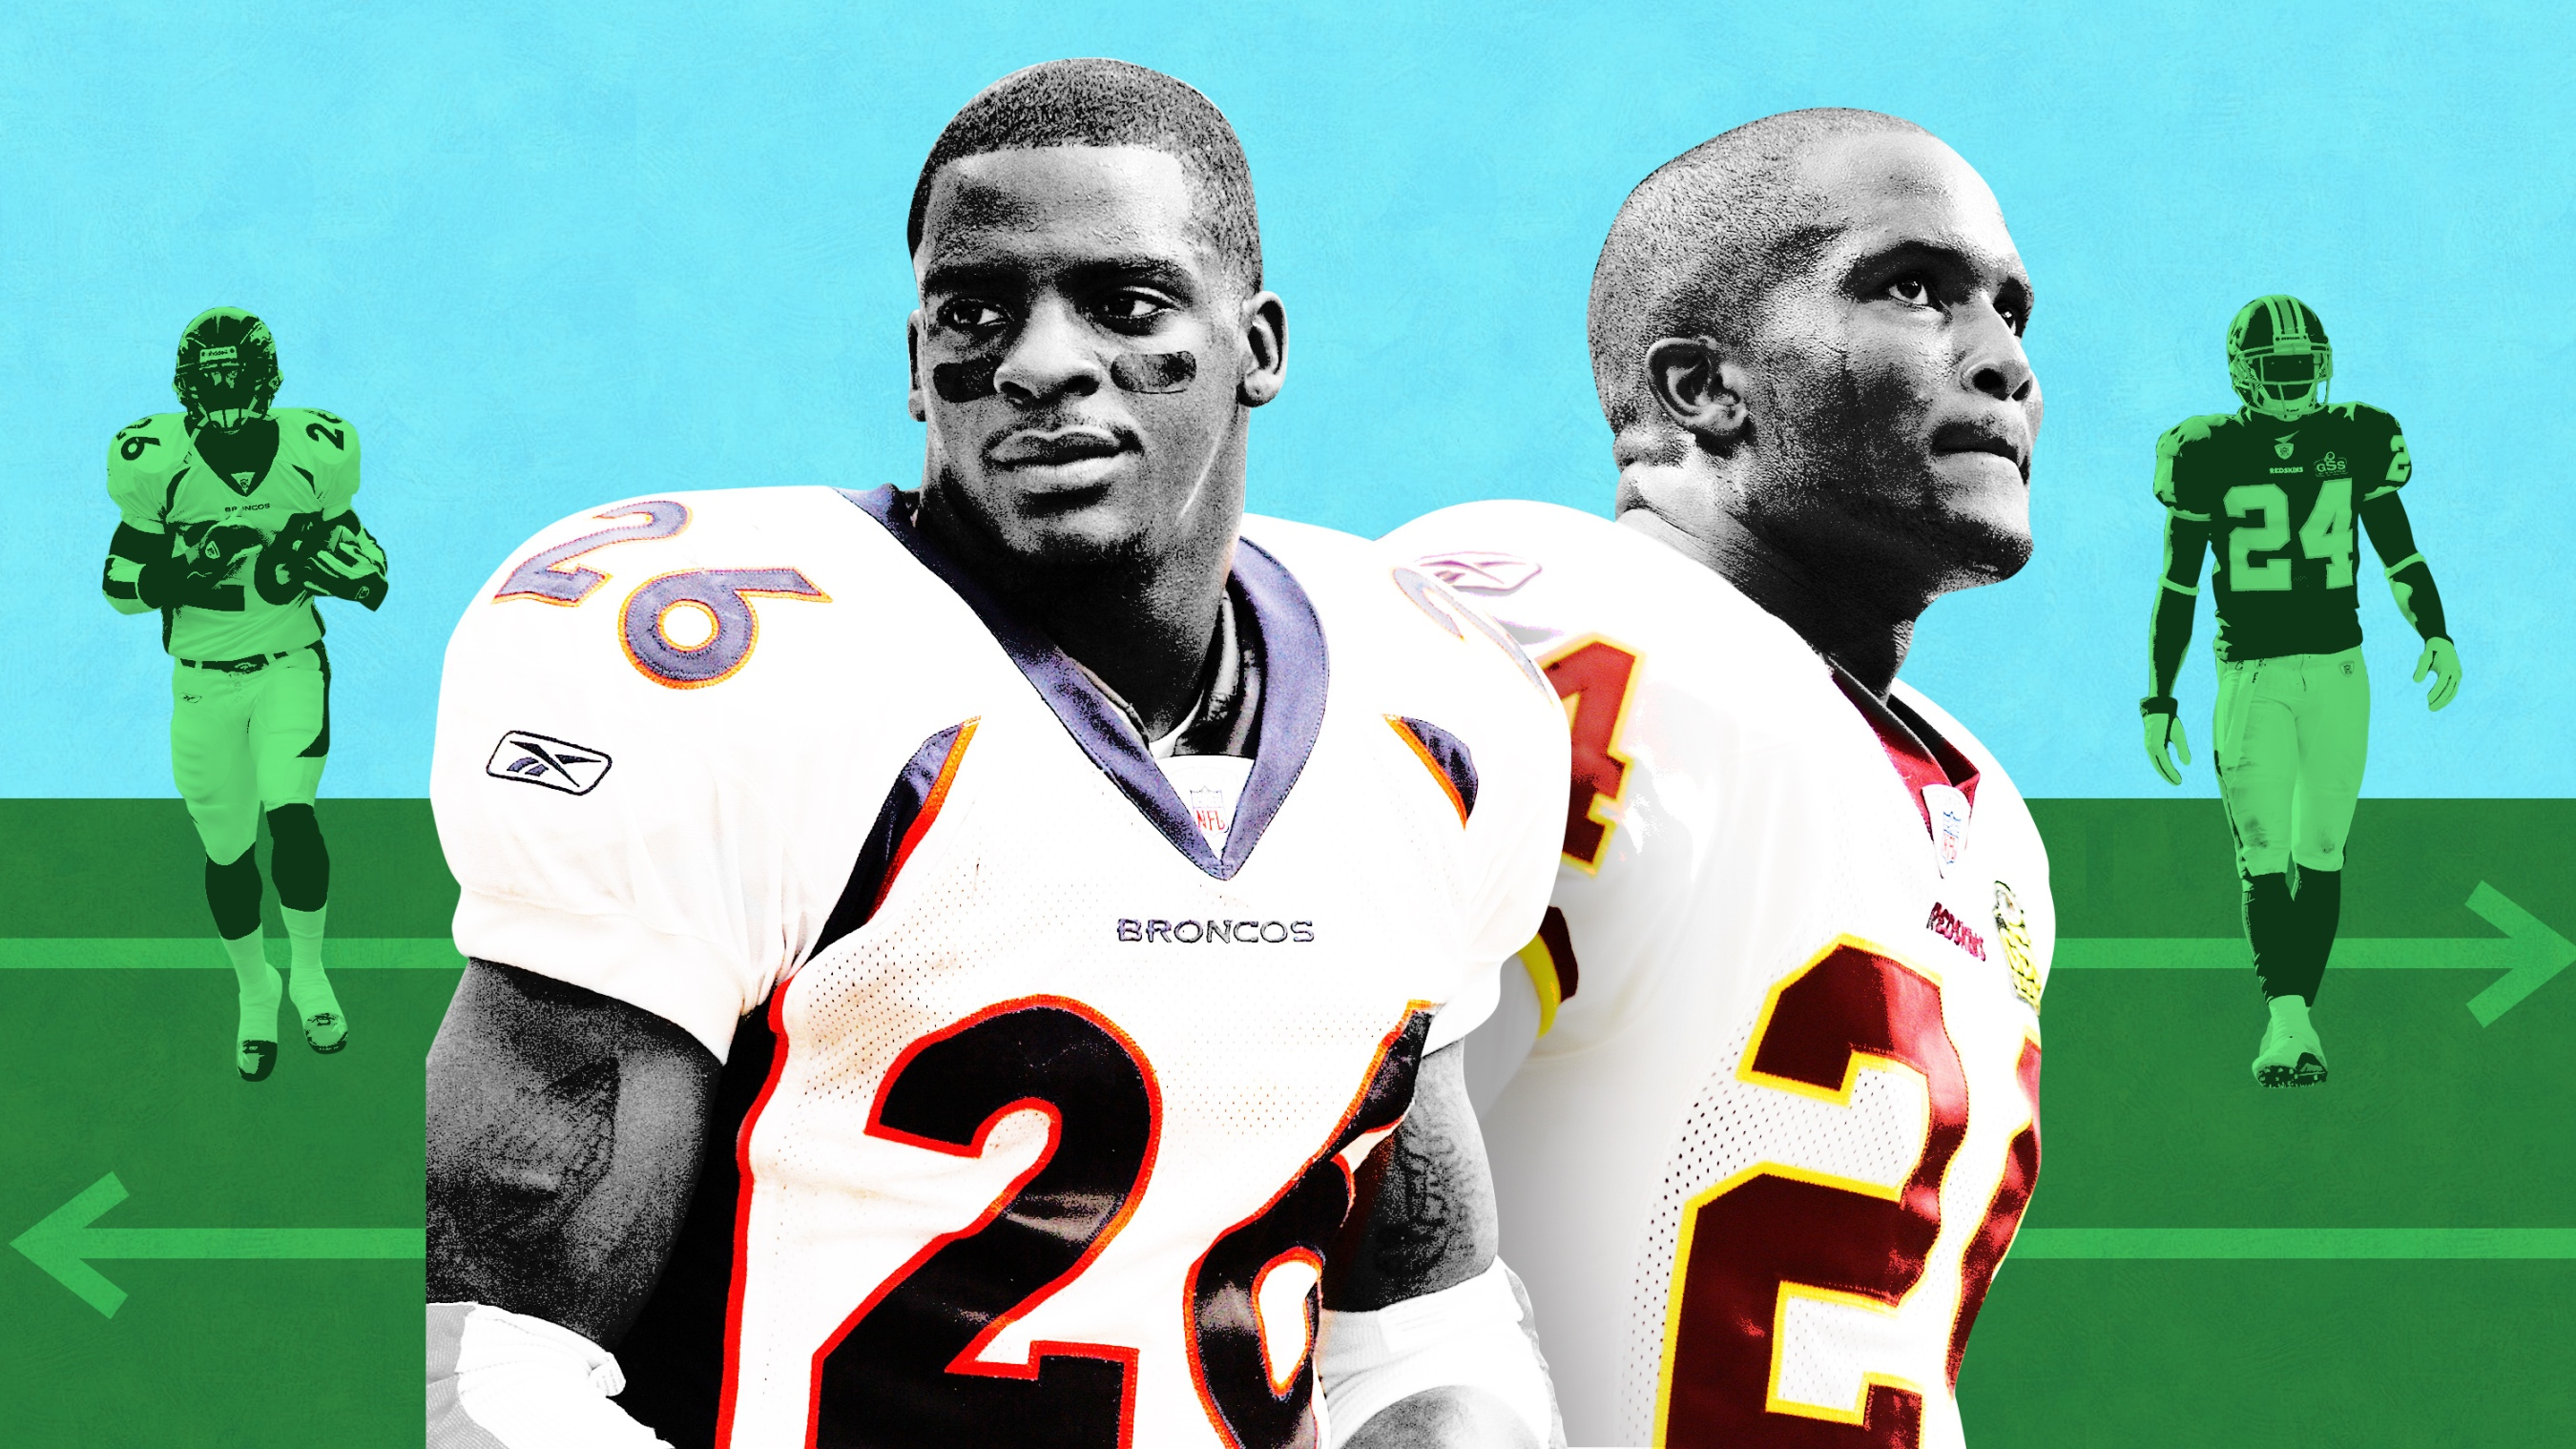 5b7b9ea9840 Champ Bailey, Clinton Portis and their blockbuster trade